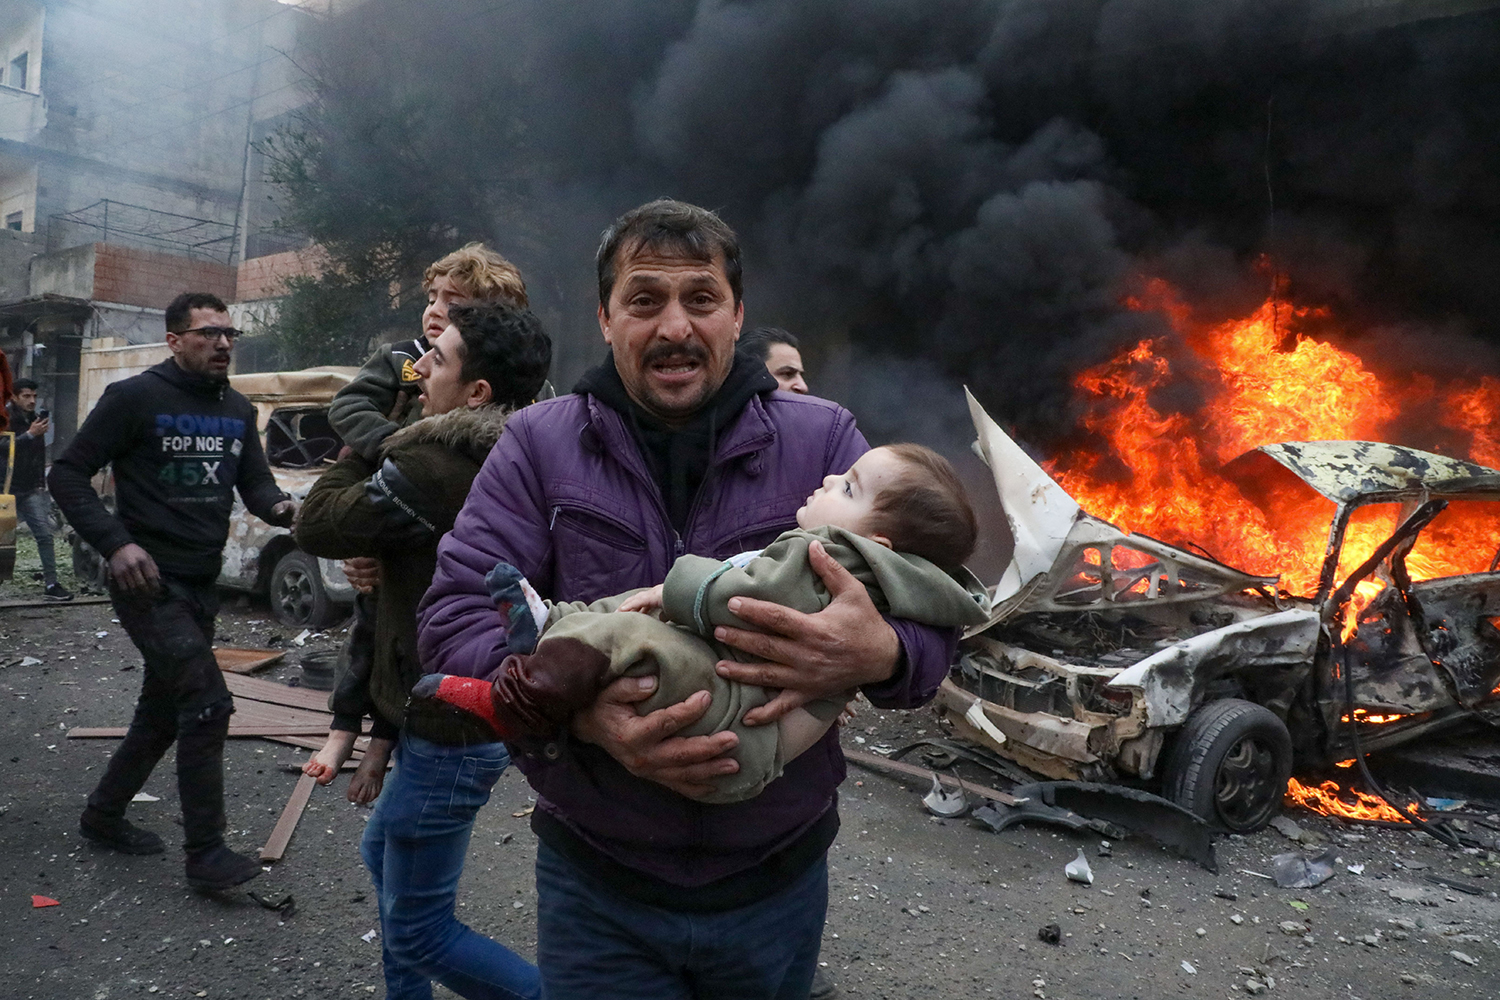 A man carries a young victim at the scene of an explosion in the town of Azaz, in the rebel-controlled northern countryside of Syria's Aleppo province, on Jan. 31. NAYEF AL-ABOUD/AFP via Getty Images